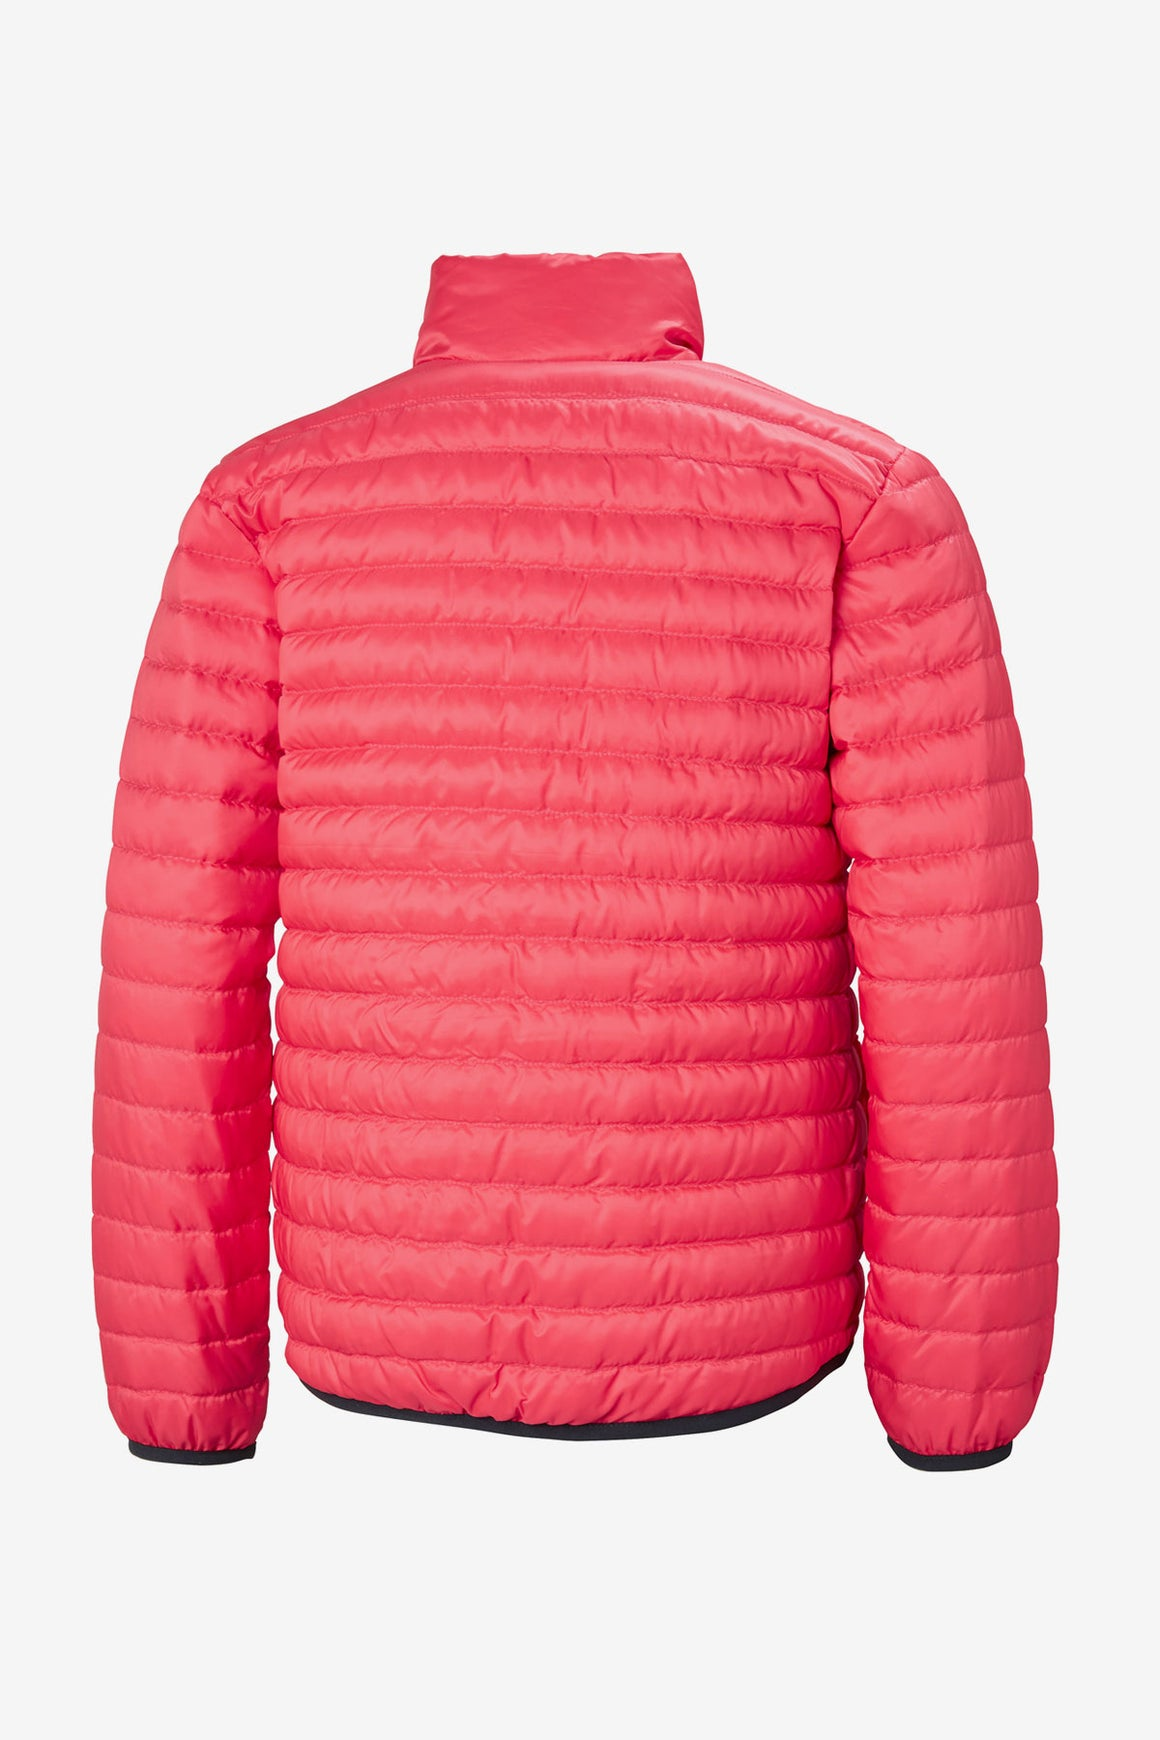 Helly Hansen Jr Barrier Down Insulator - Goji Berry